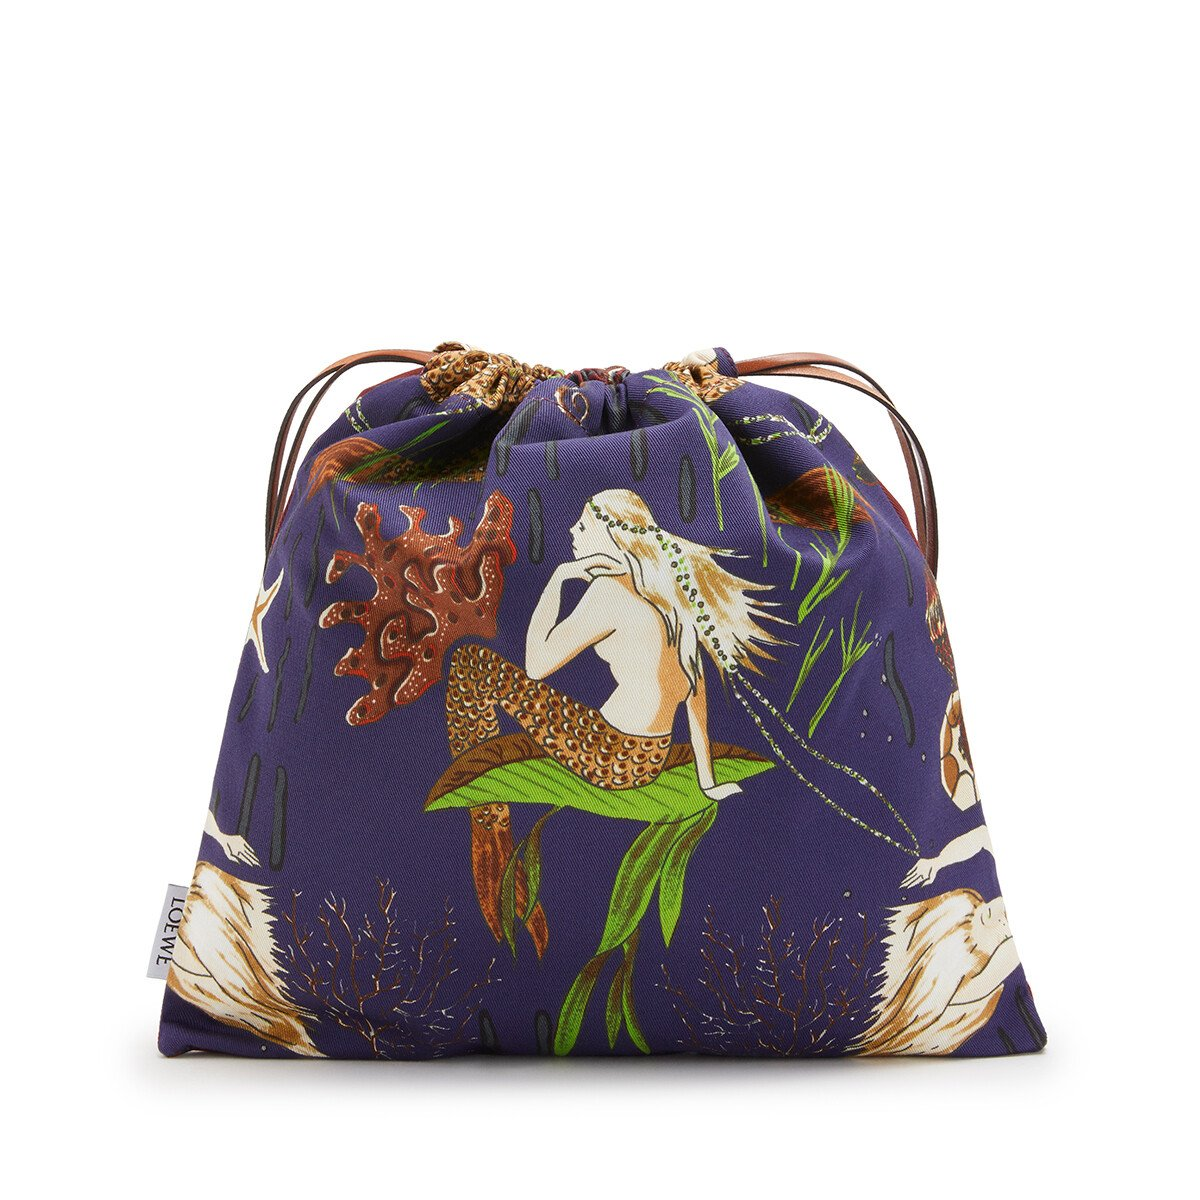 LOEWE Small Drawstring Pouch In Mermaid Canvas Burgundy/Marine front